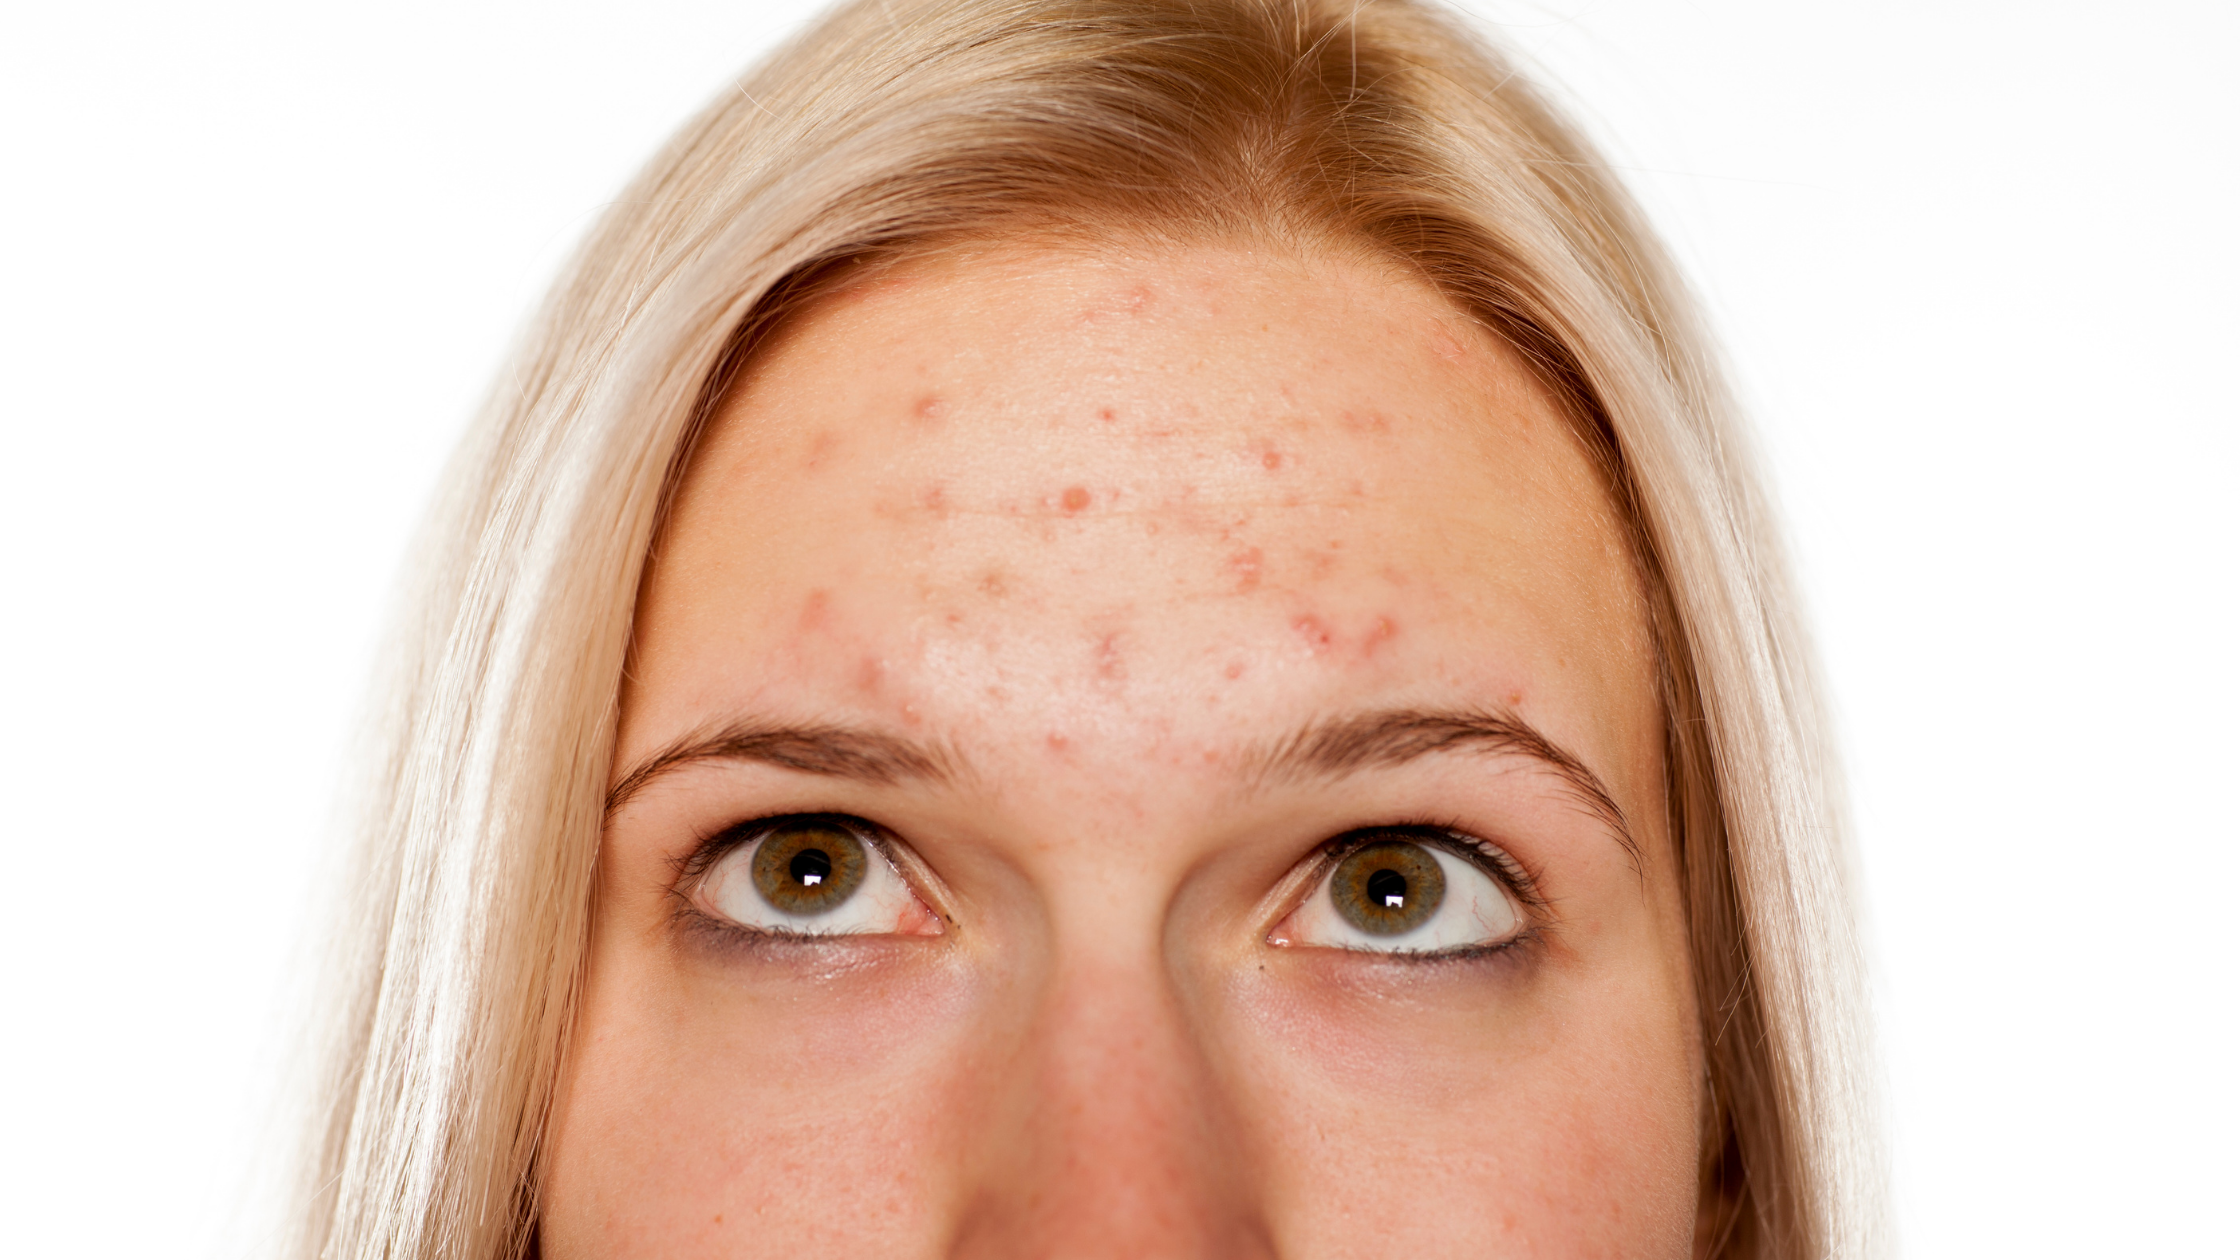 blond female forehead with acne